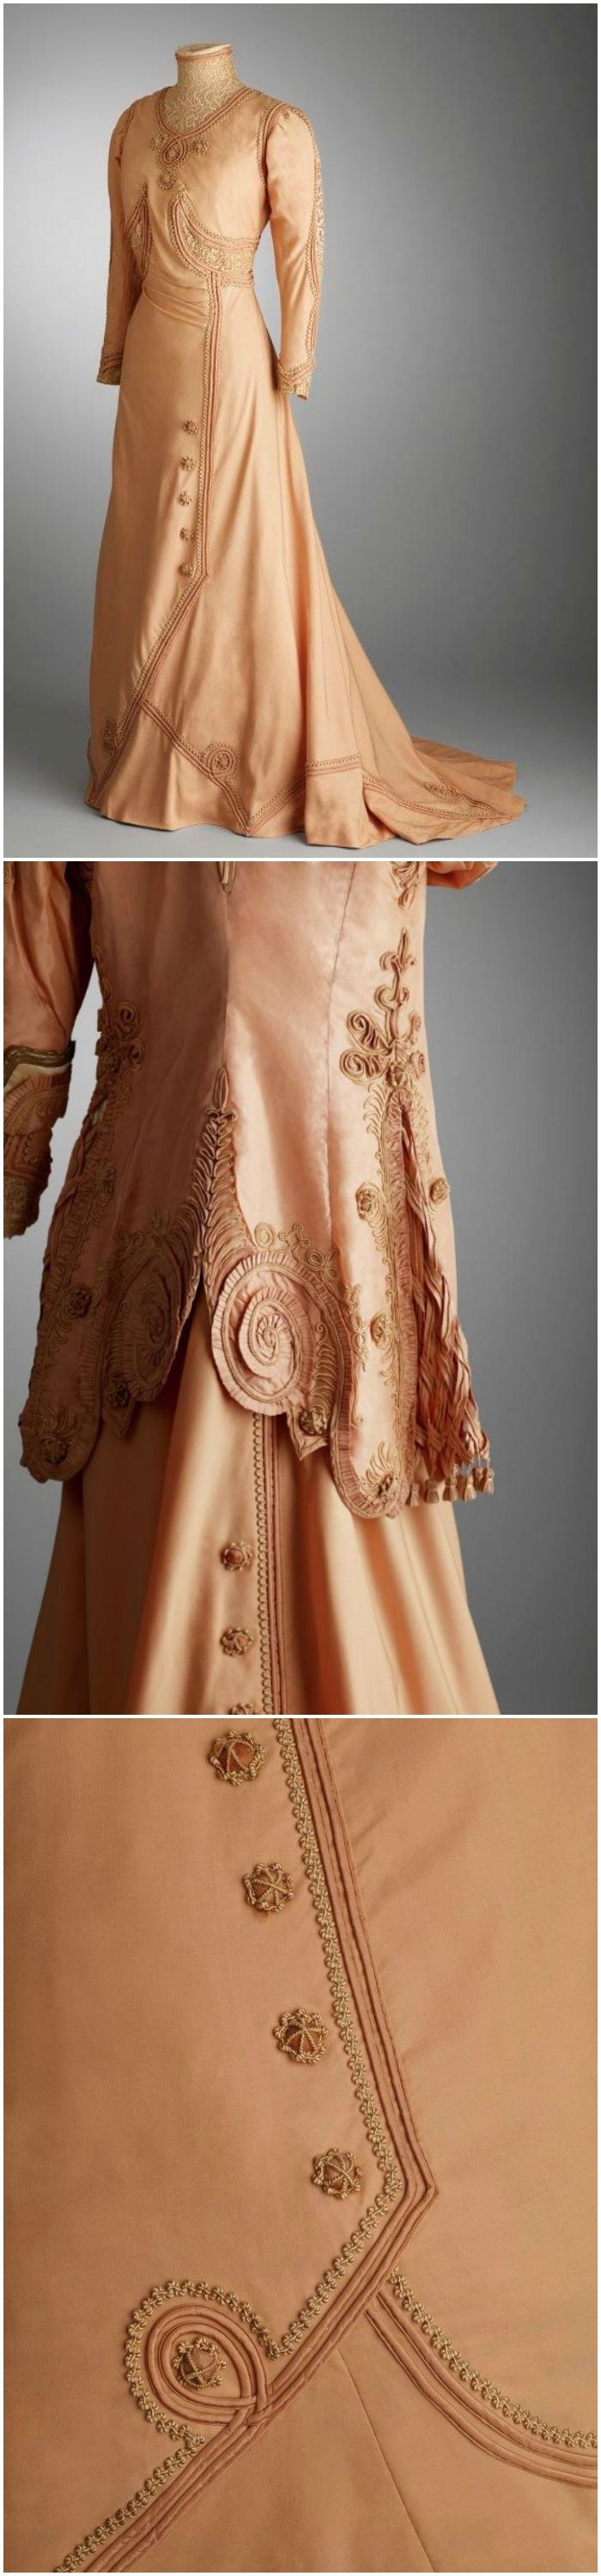 Visiting Dress with Jacket, by Au Bon Marché / M.A. Boucicaut, Paris, 1908-11, Hillwood Estate, Museum & Gardens. Late Edwardian dress of peach colored silk linen with a high lace collar and matching jacket. Silk taffeta rope cording, covered wooden buttons, crocheted cotton thread, and gold thread embroidery. Tubular sleeves (dress and jacket). Covered wood buttons and trim elaborately repeated on the jacket. Sides of the jacket embellished with lattice work and hanging covered wood…